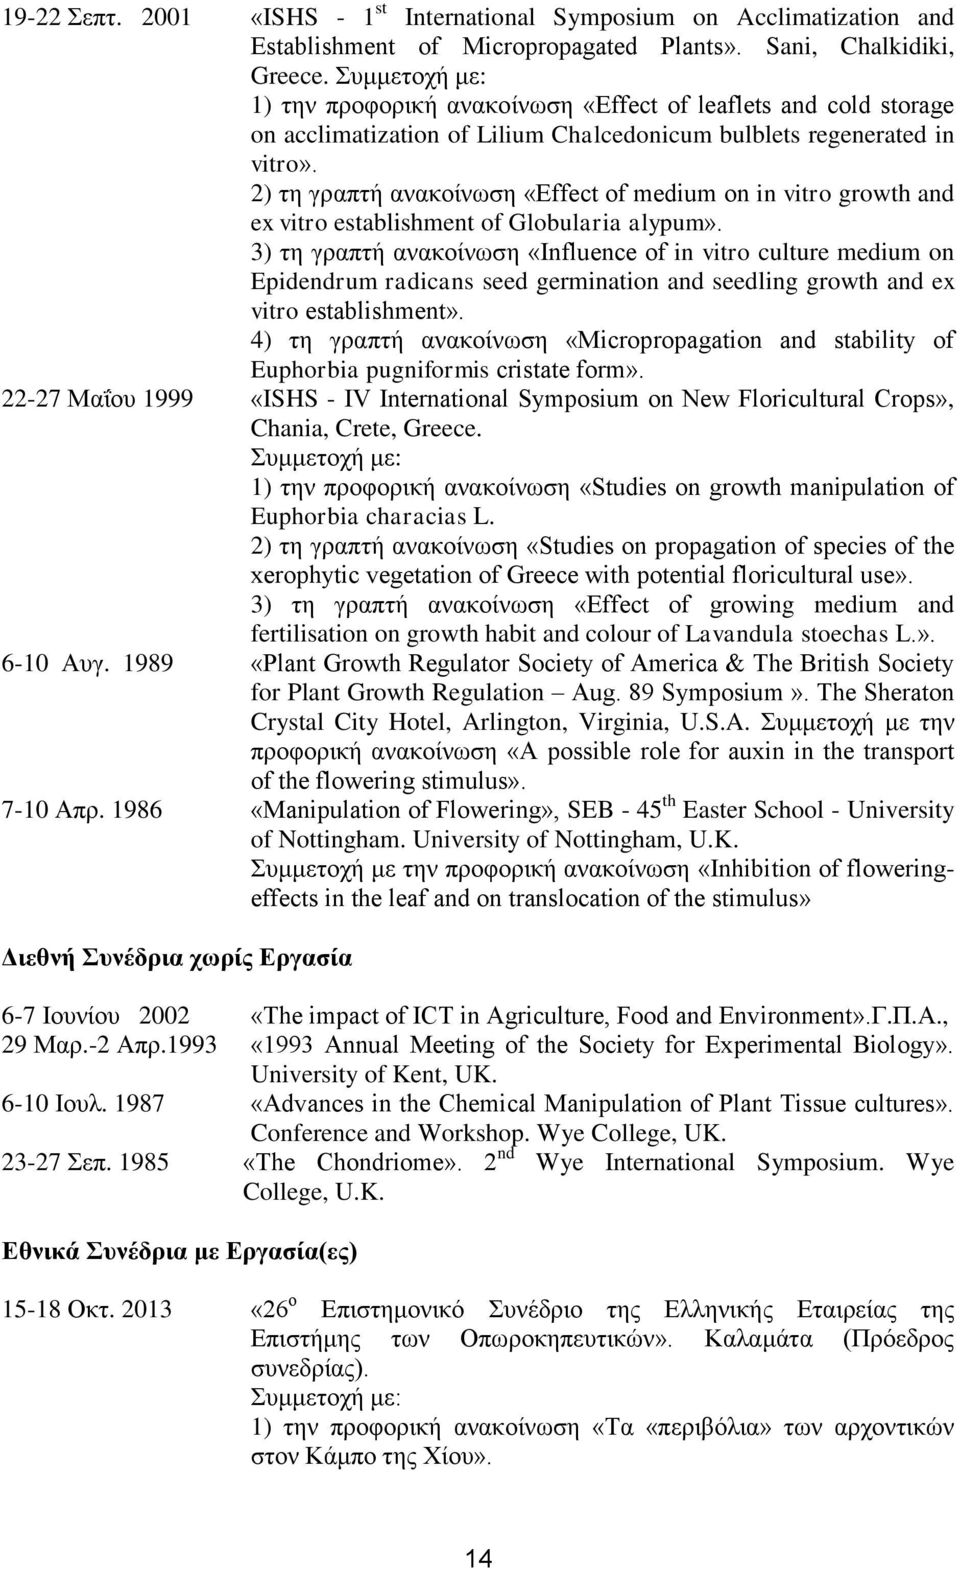 2) τη γραπτή ανακοίνωση «Effect of medium on in vitro growth and ex vitro establishment of Globularia alypum».